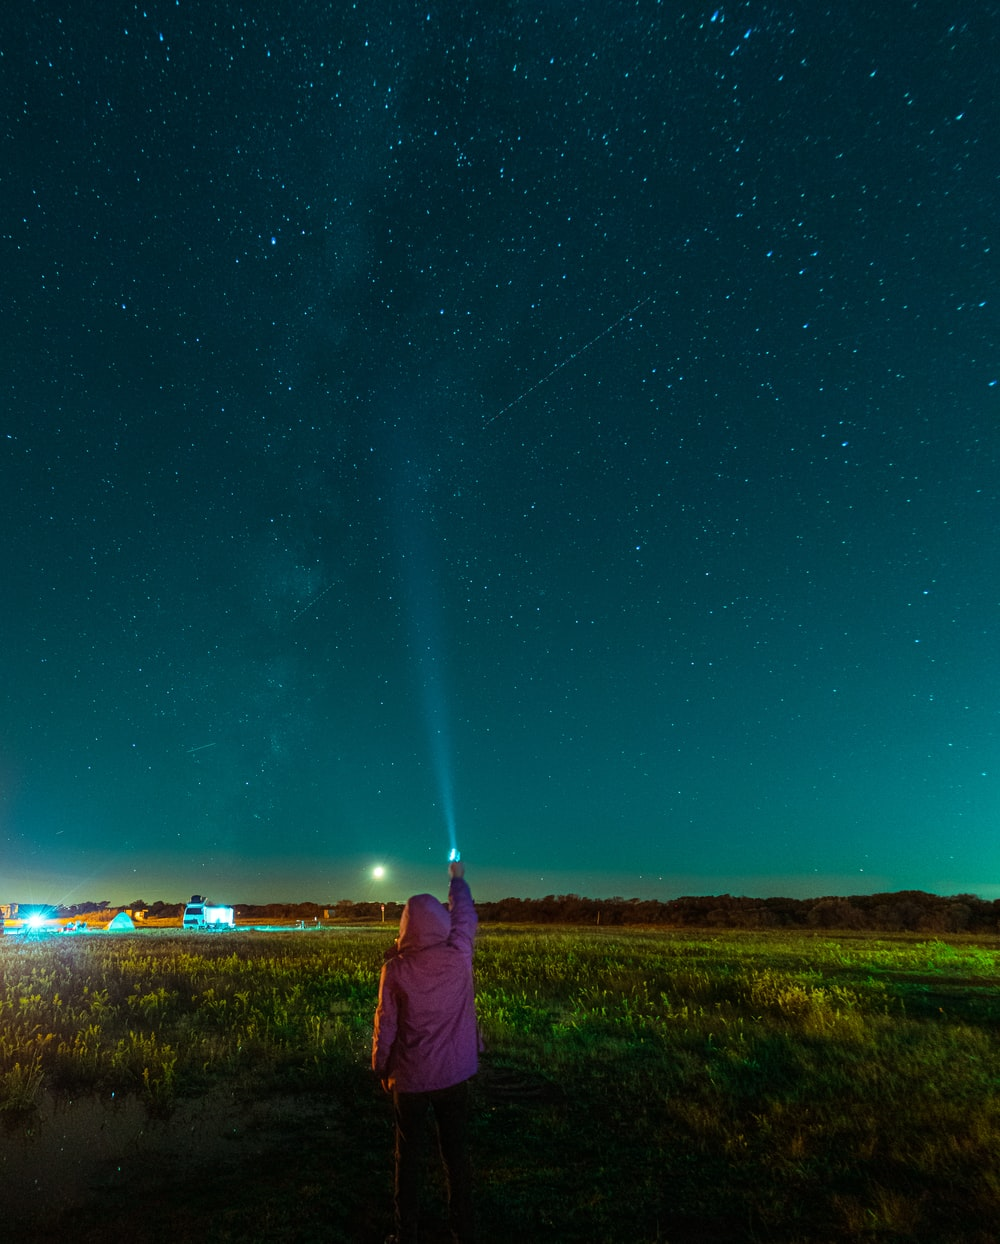 woman in purple jacket standing on green grass field during night time